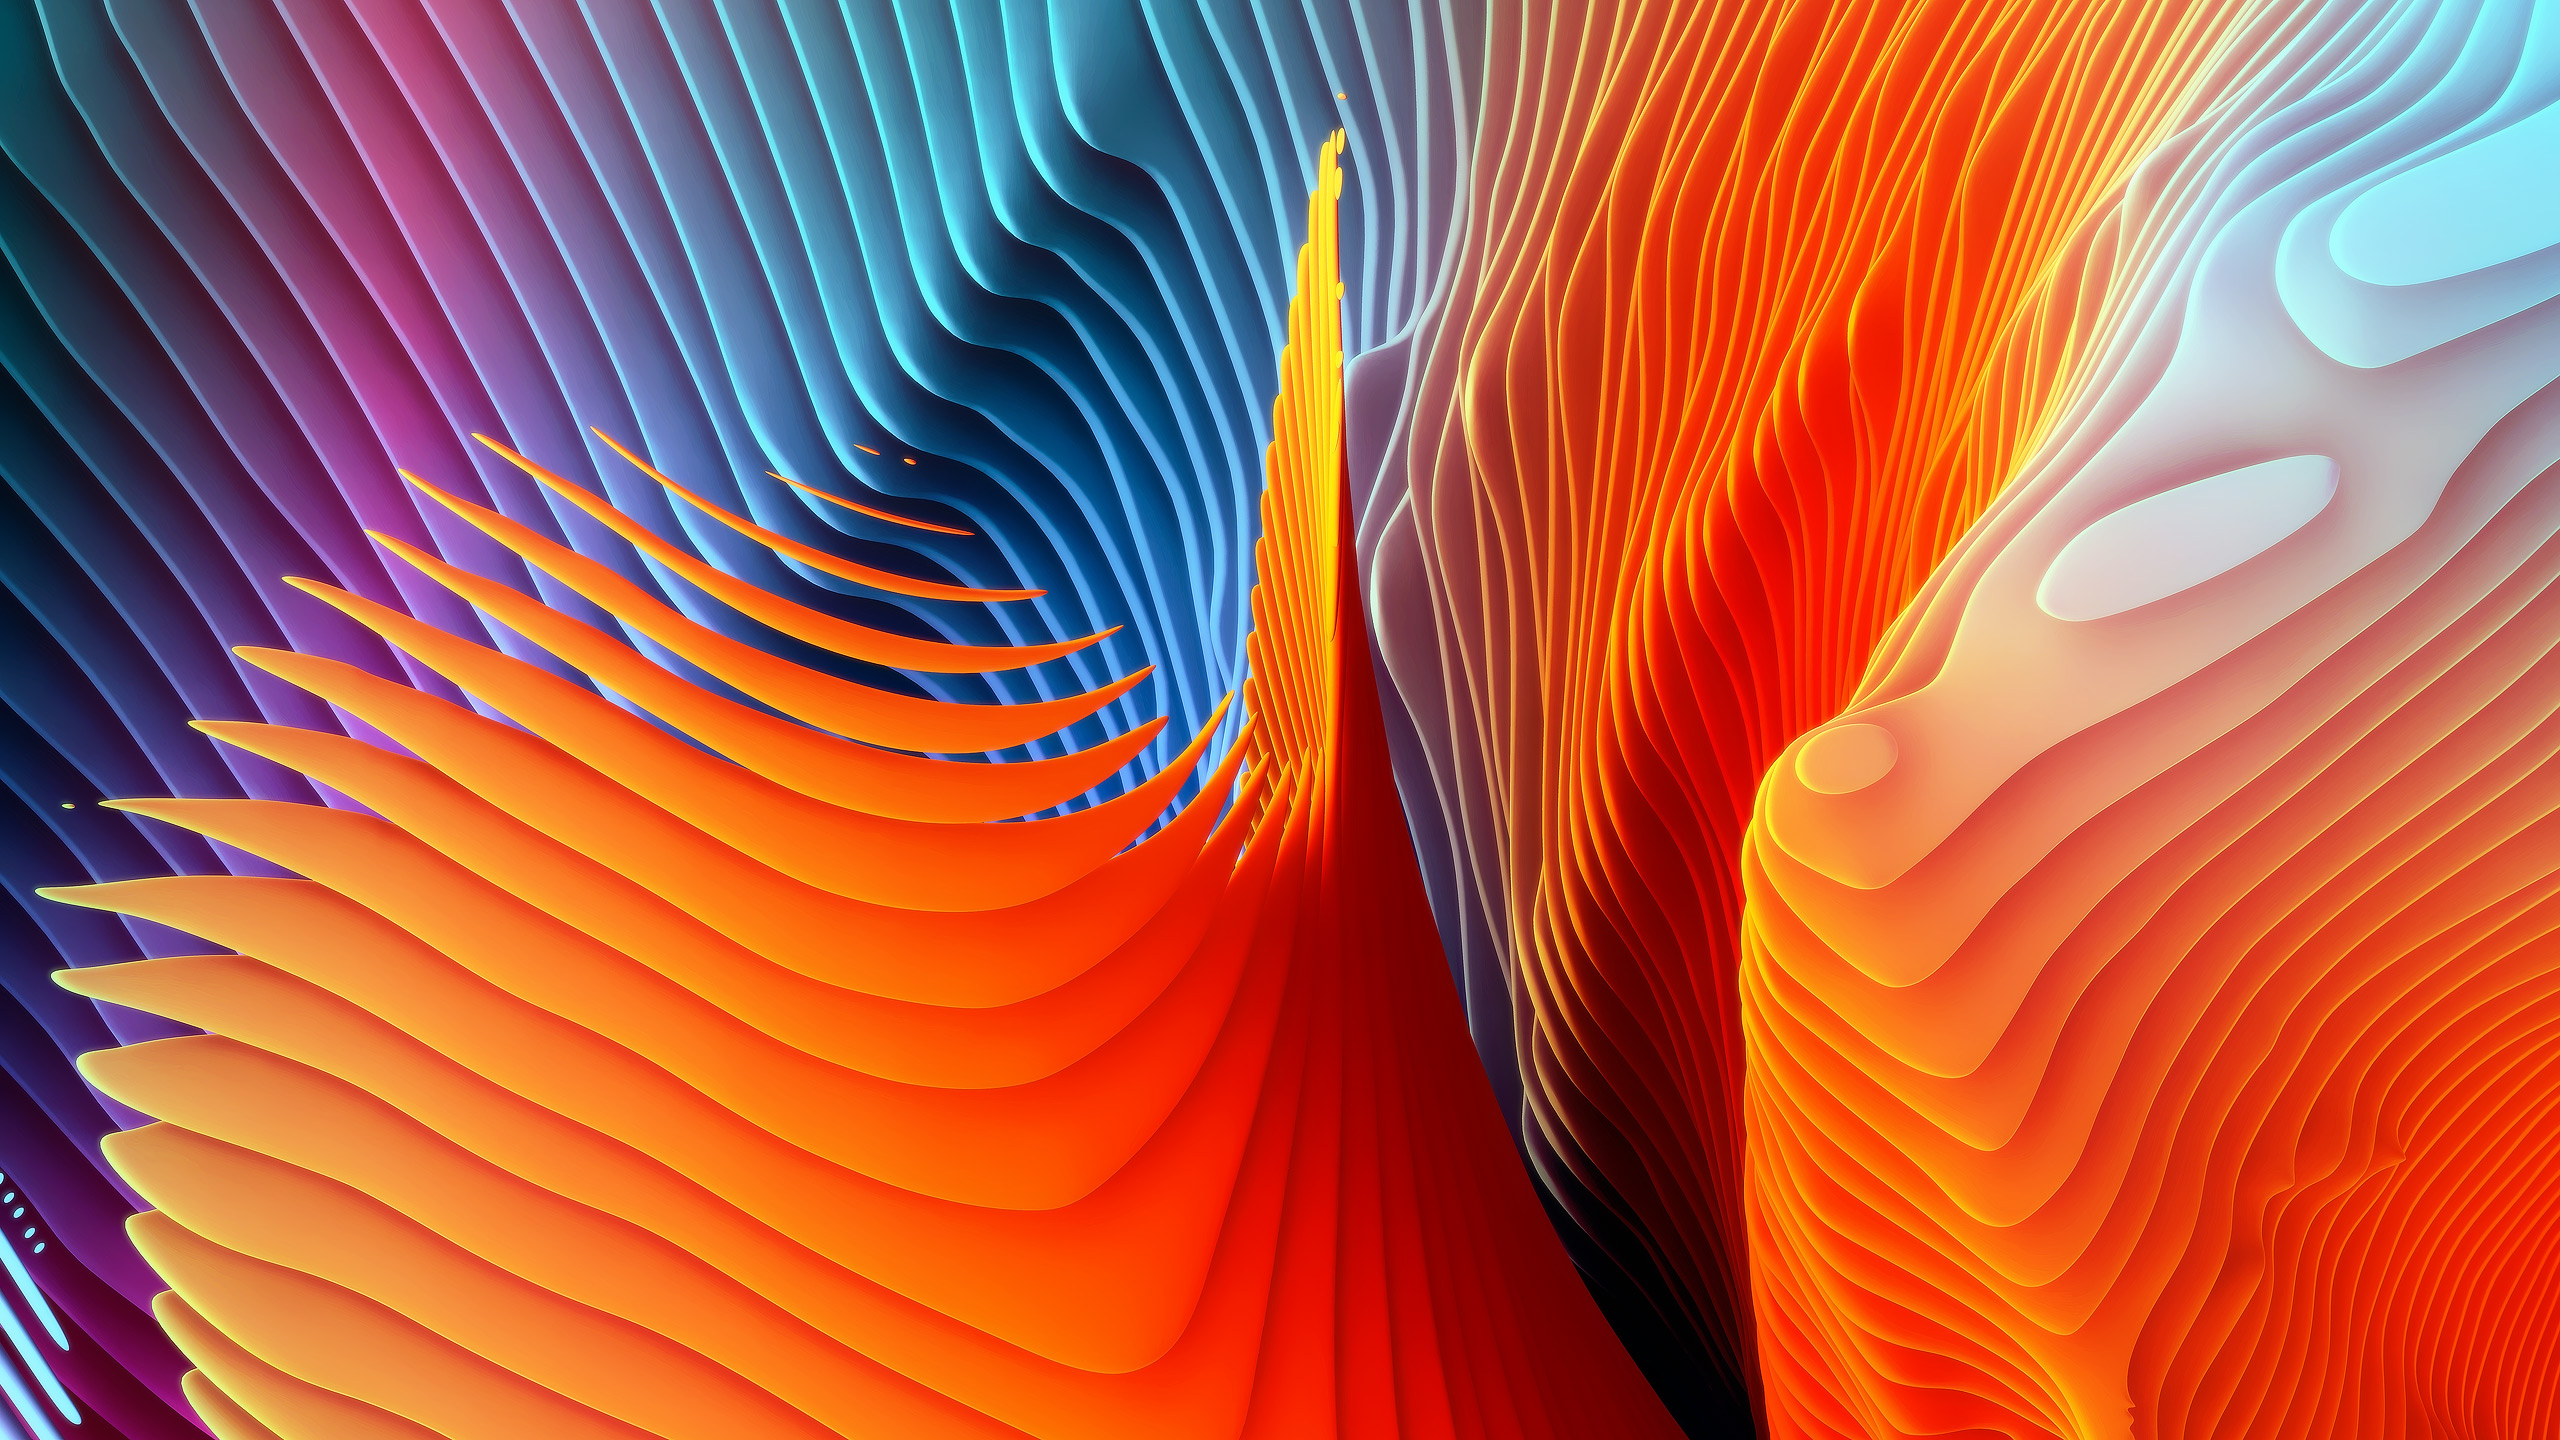 1080p Abstract Wallpapers Packs Download Hd Colourful